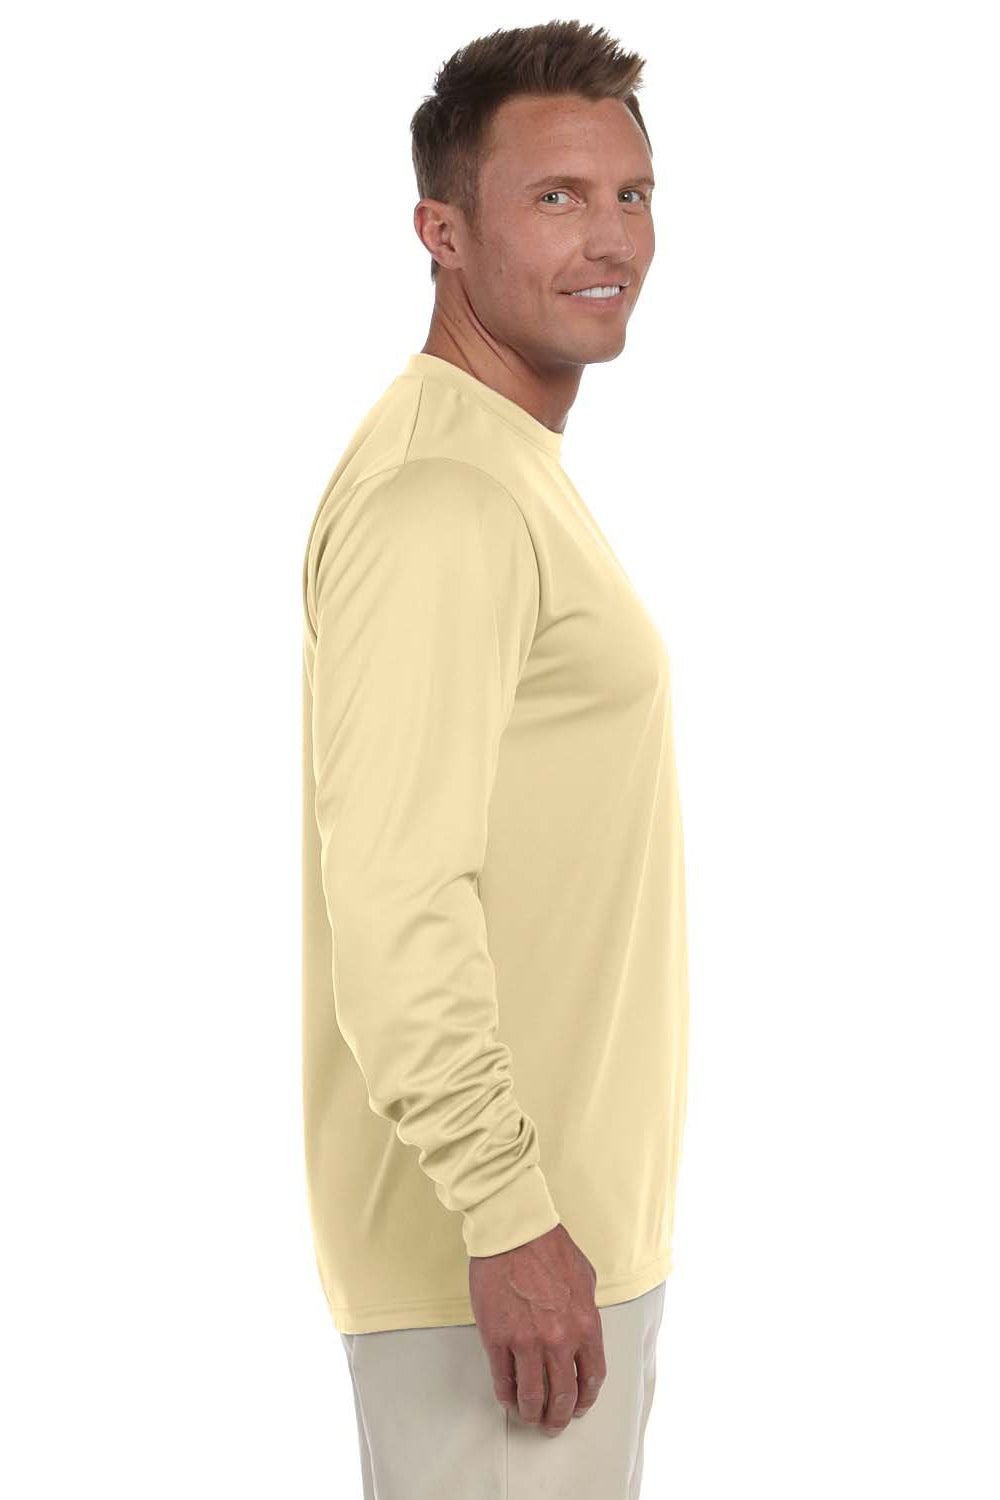 Augusta Sportswear 788 Mens Moisture Wicking Long Sleeve Crewneck T-Shirt Vegas Gold Side